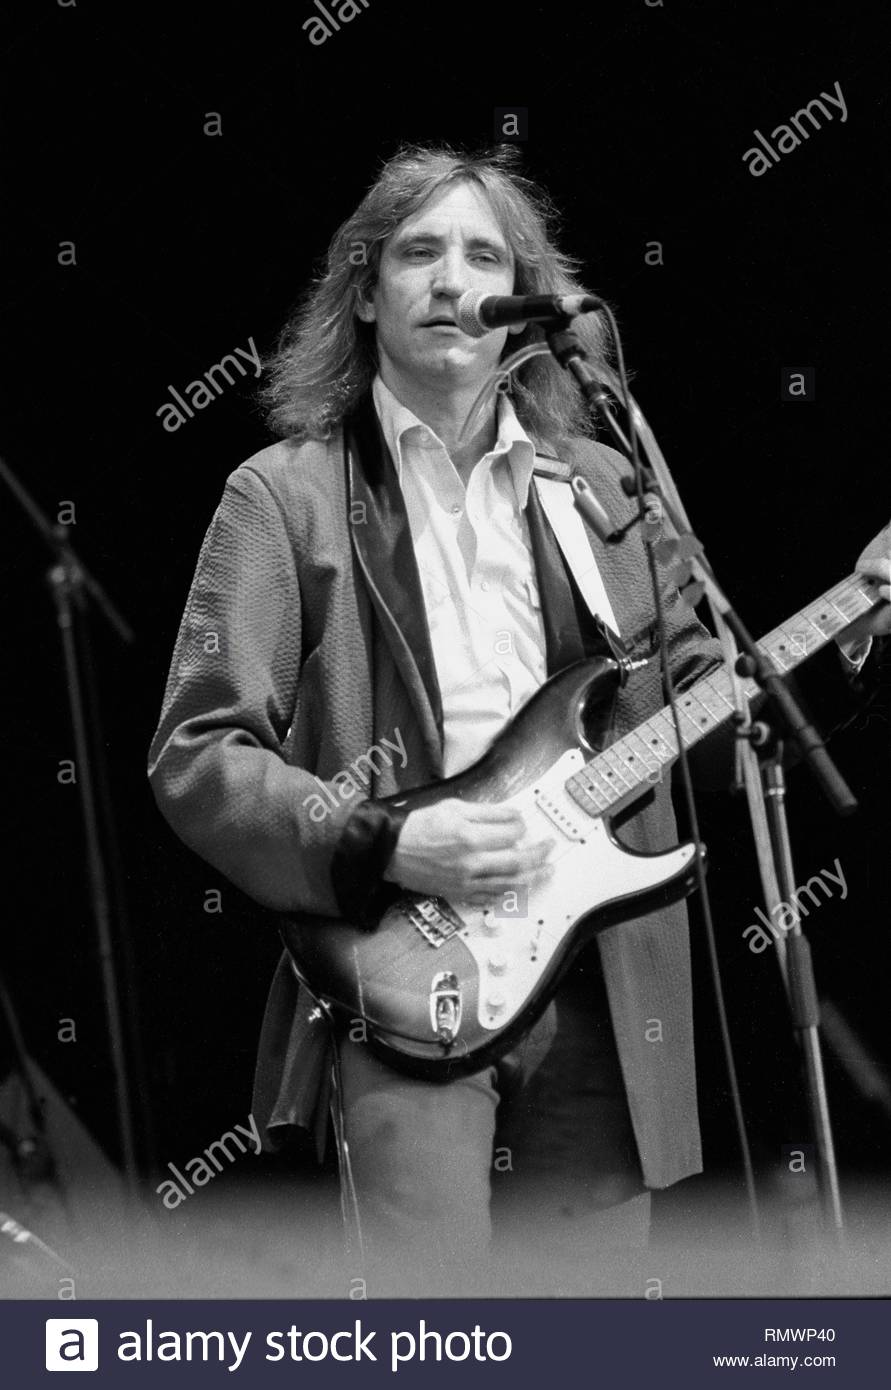 Musician Joe Walsh is shown performing on stage during a 'live' concert appearance Ringo Starr & the All Starr Band. - Stock Image